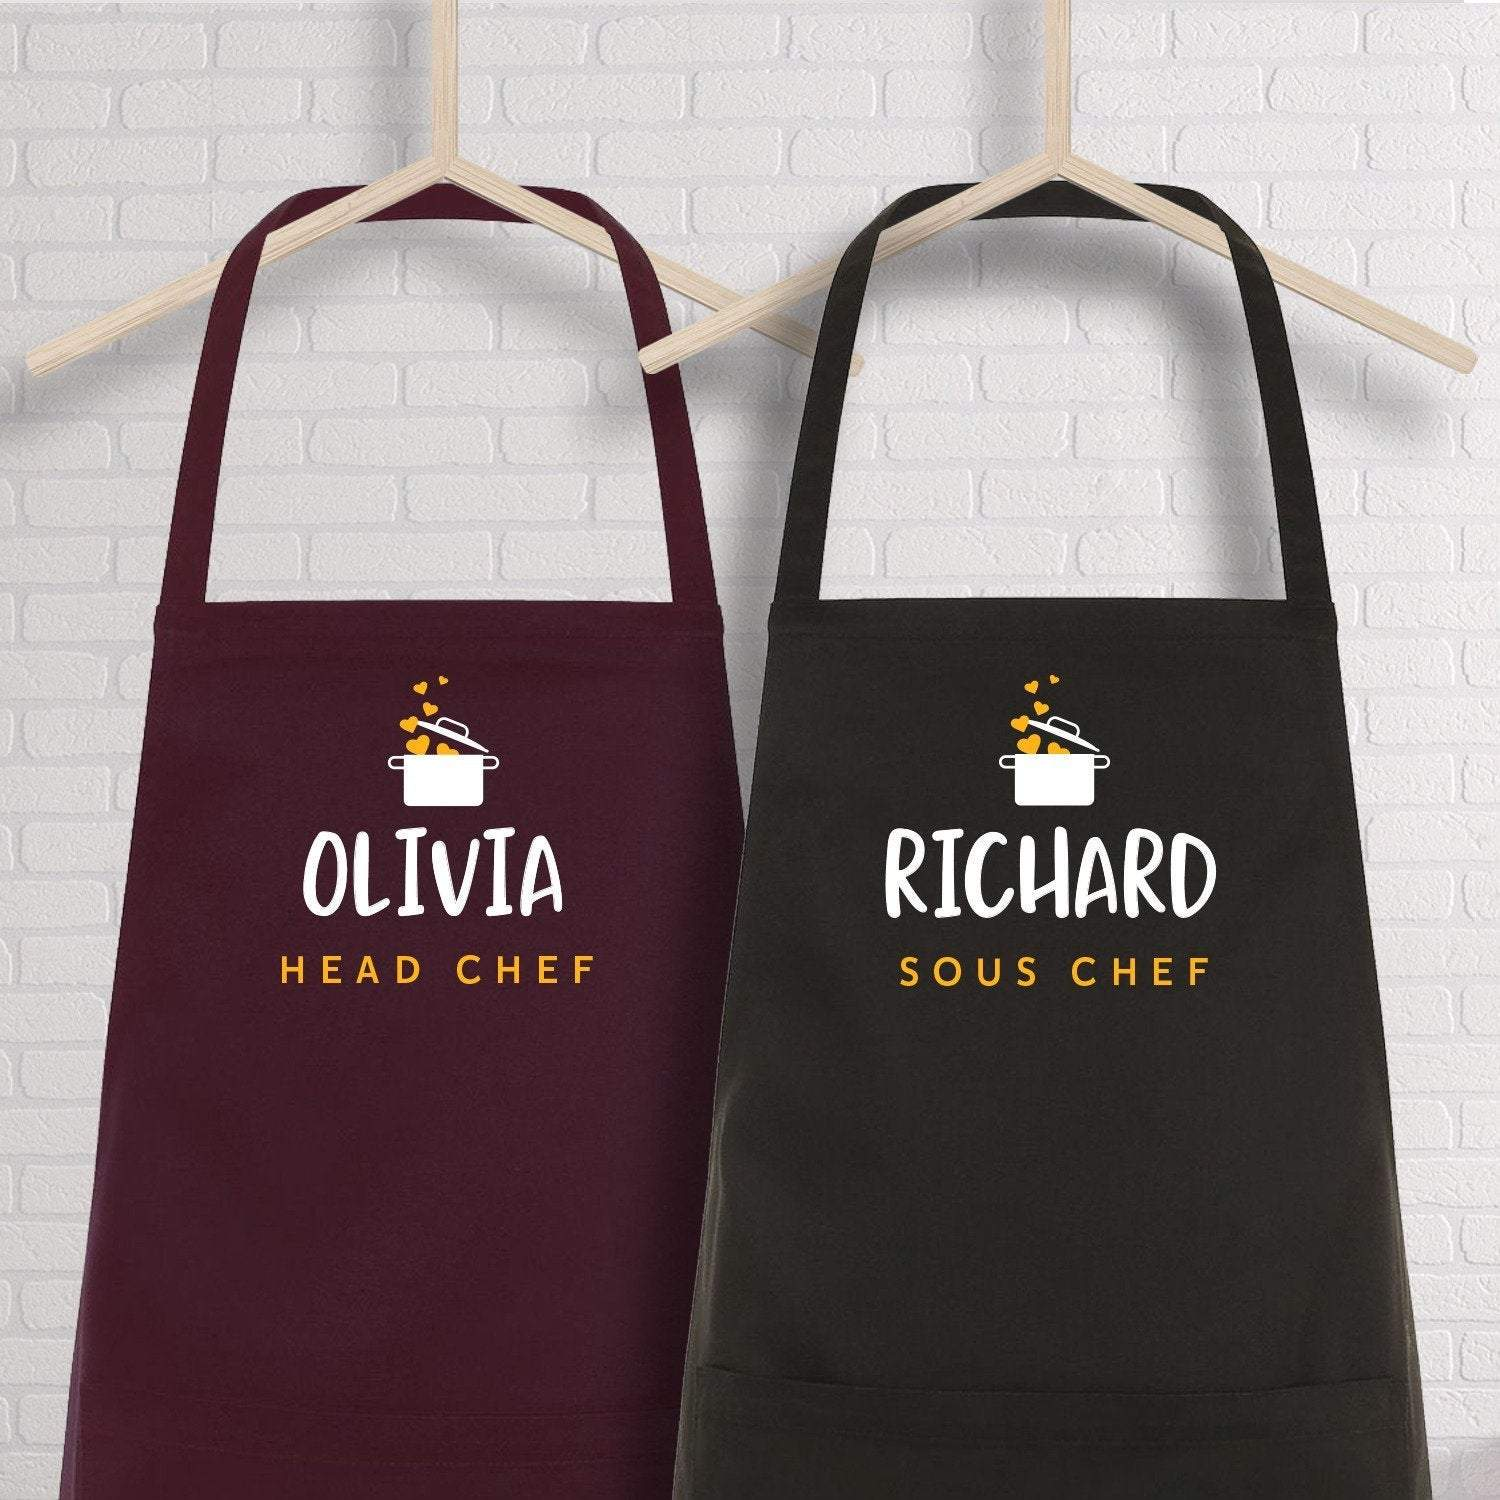 Head chef and Sous chef aprons with name, SET OF 2, Valentine's Day gift, Housewarming GIft